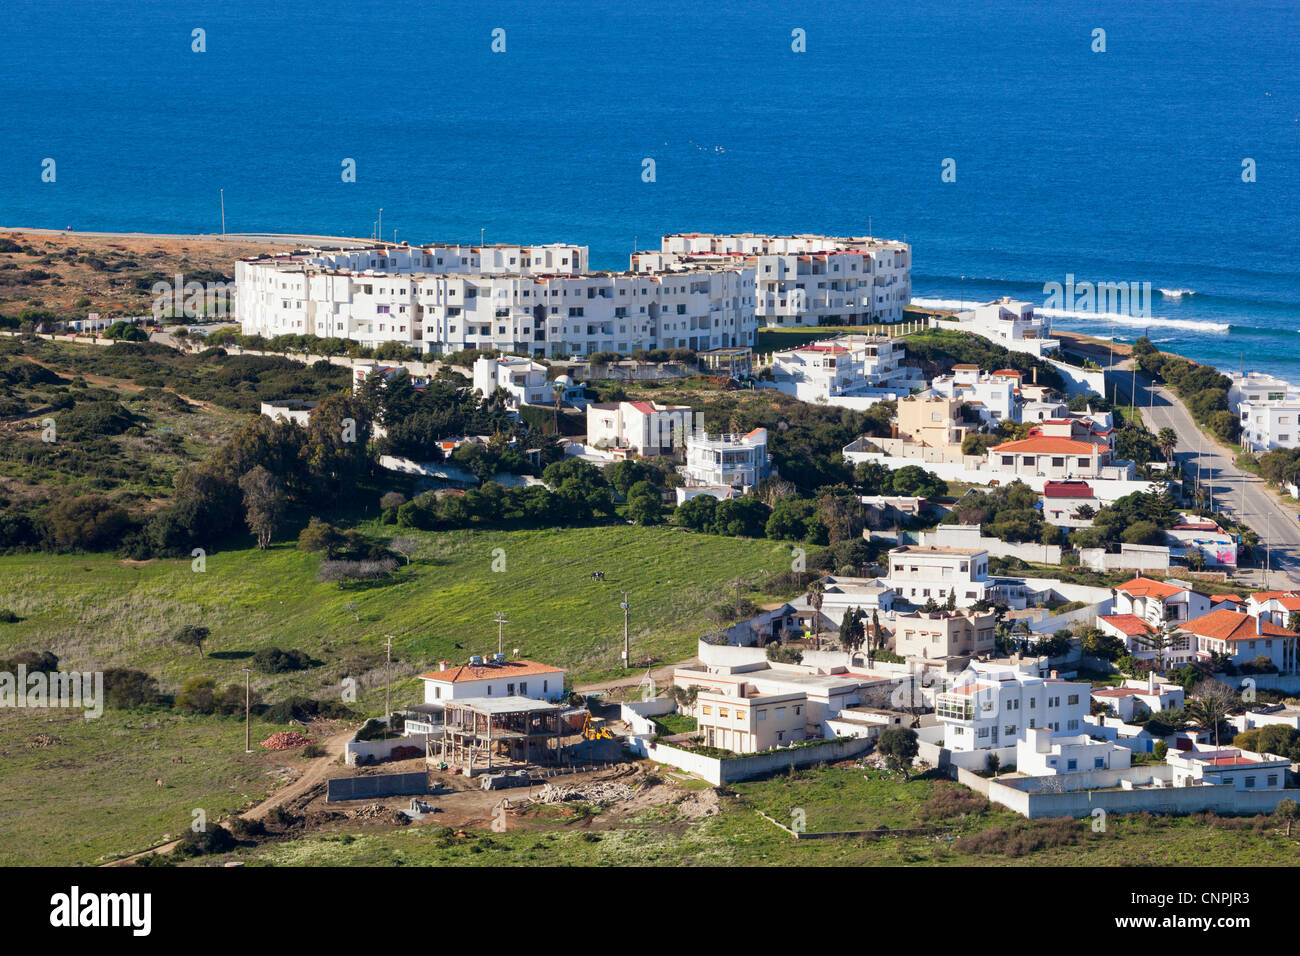 Frontline property near Cap Spartel, near Tangiers, Morocco. - Stock Image